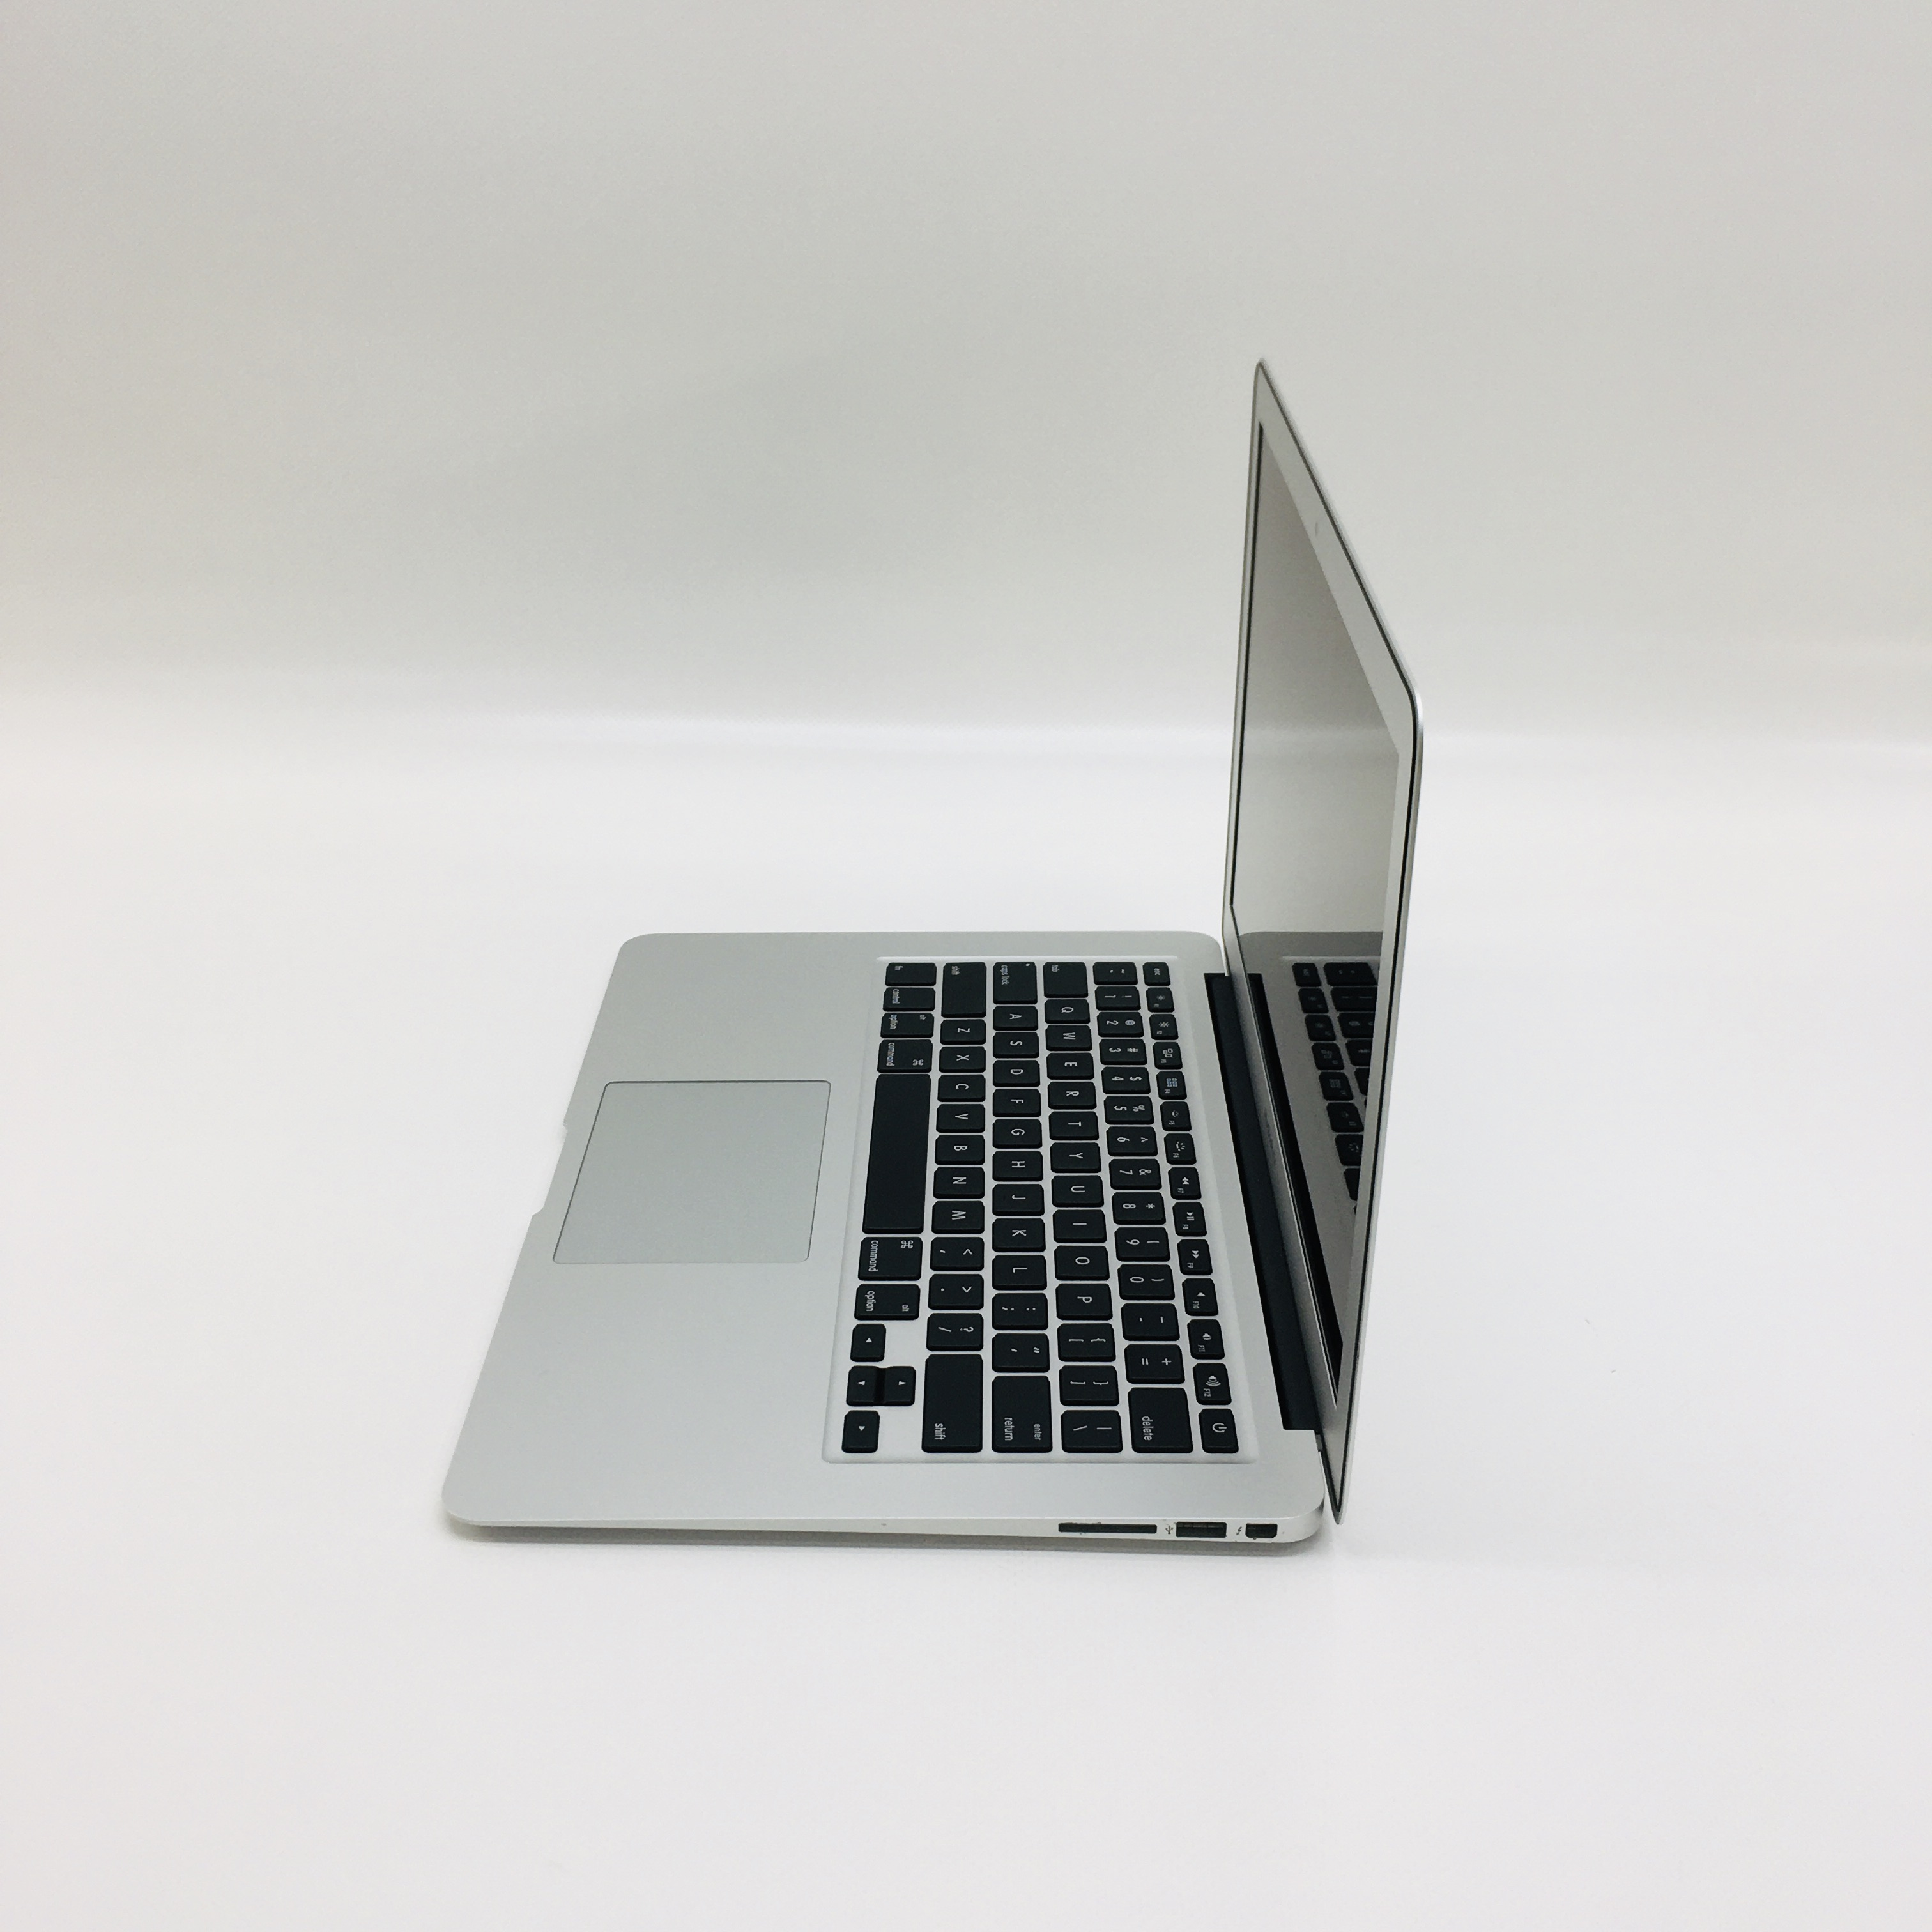 "MacBook Air 13"" Early 2015 (Intel Core i5 1.6 GHz 4 GB RAM 256 GB SSD), Intel Core i5 1.6 GHz, 4 GB RAM, 256 GB SSD, image 3"